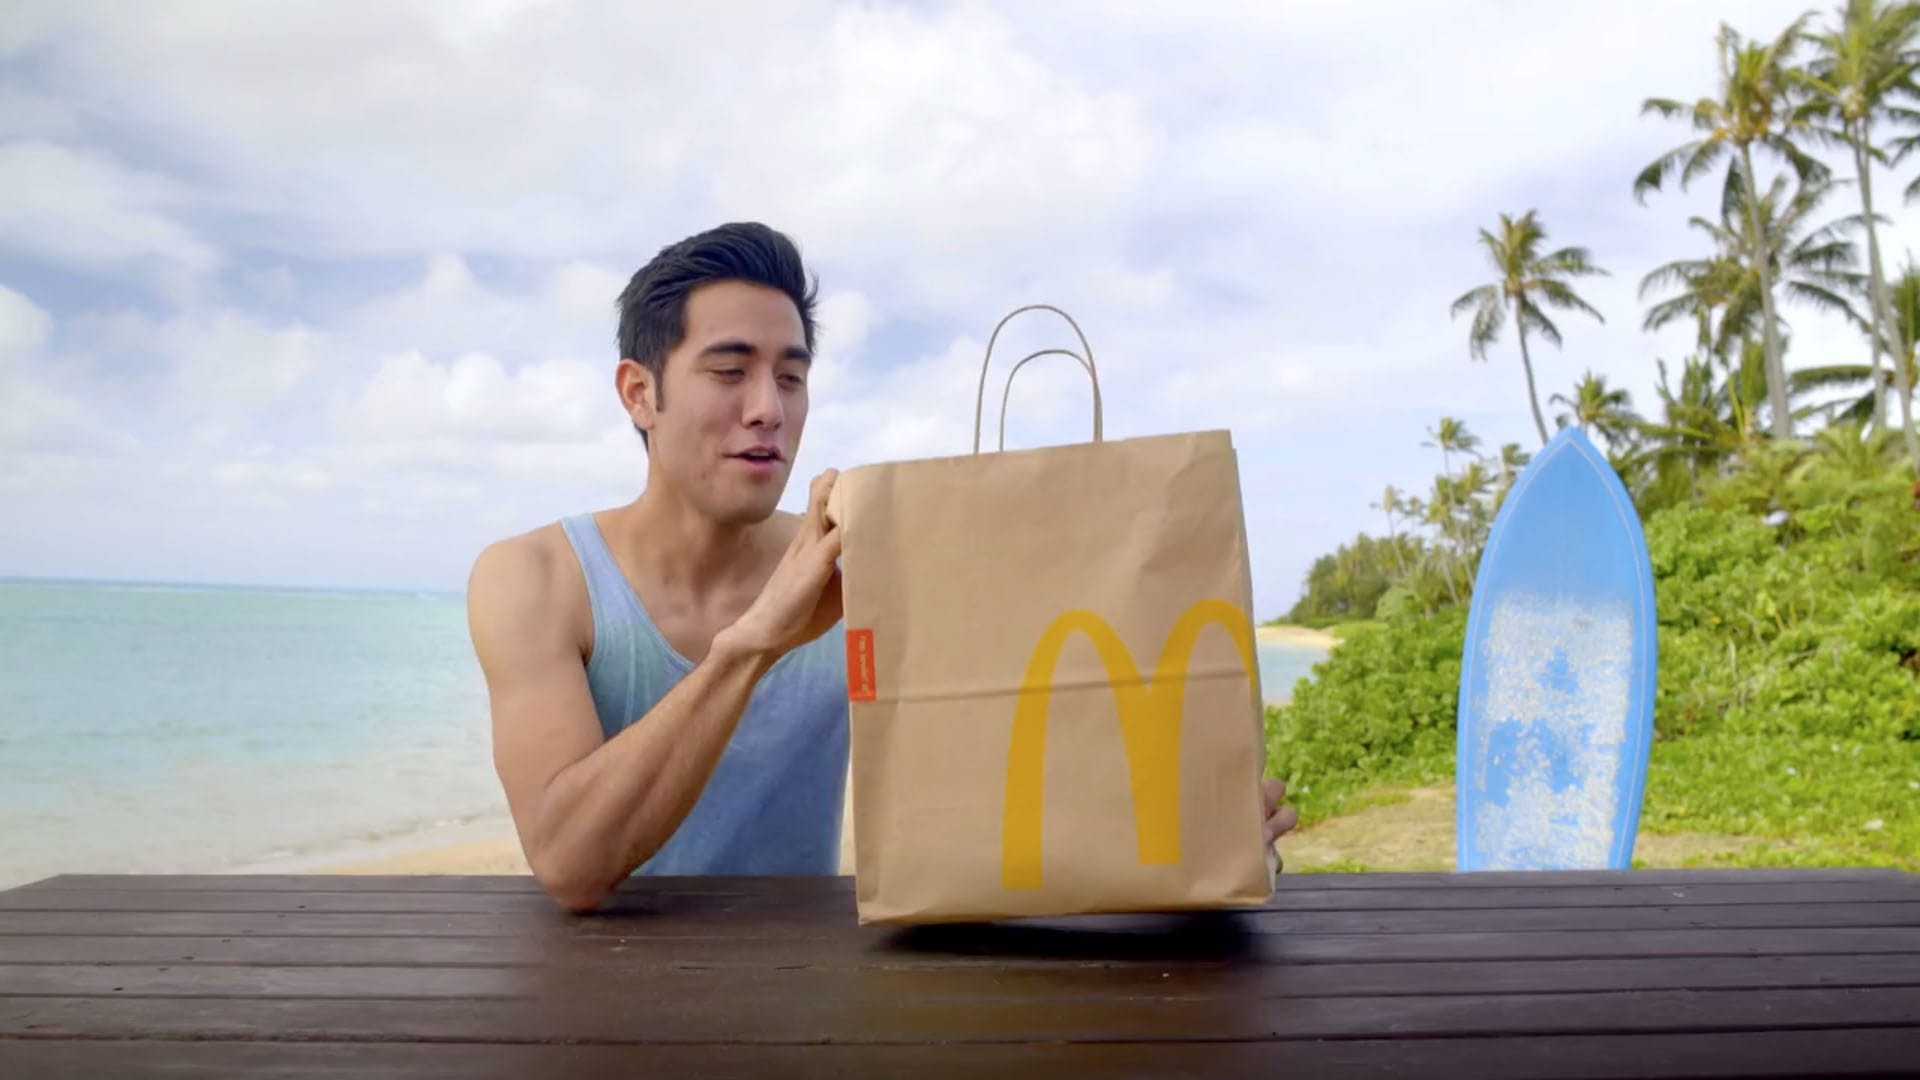 McDonald's of Hawaii: Amazing Ingredients Campaign - How Zach King refuels after dawn patrol